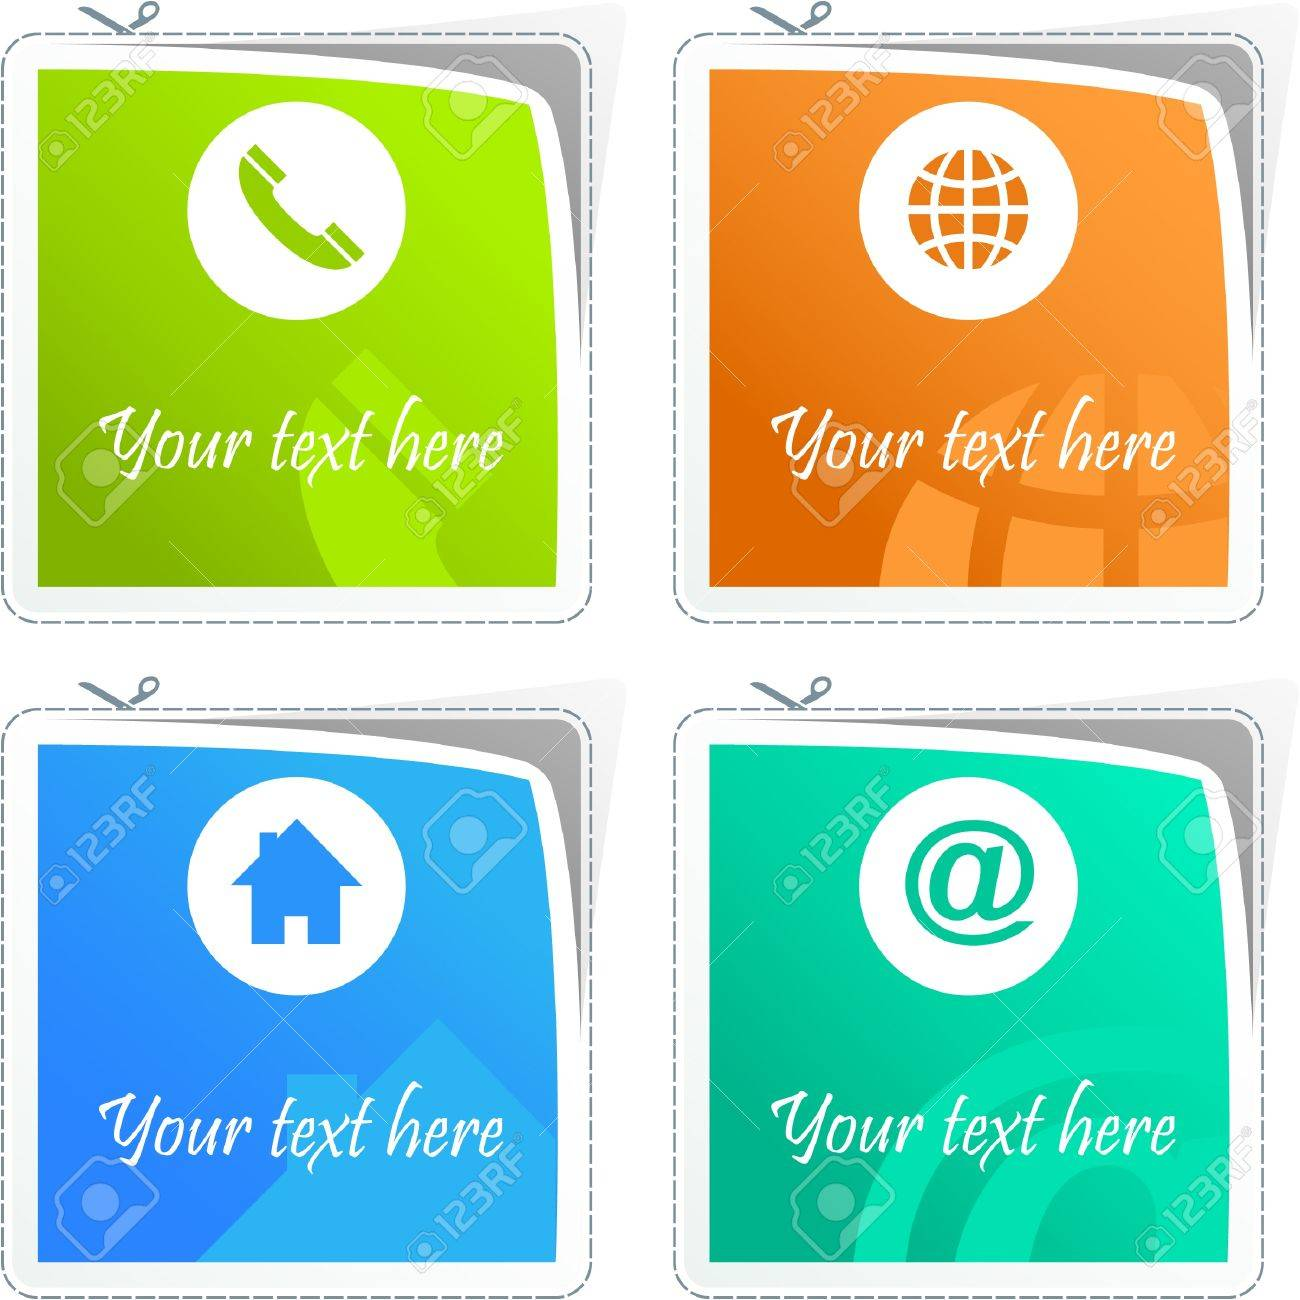 Home, phone, internet and email. Sticker set for site. Stock Vector - 9401613